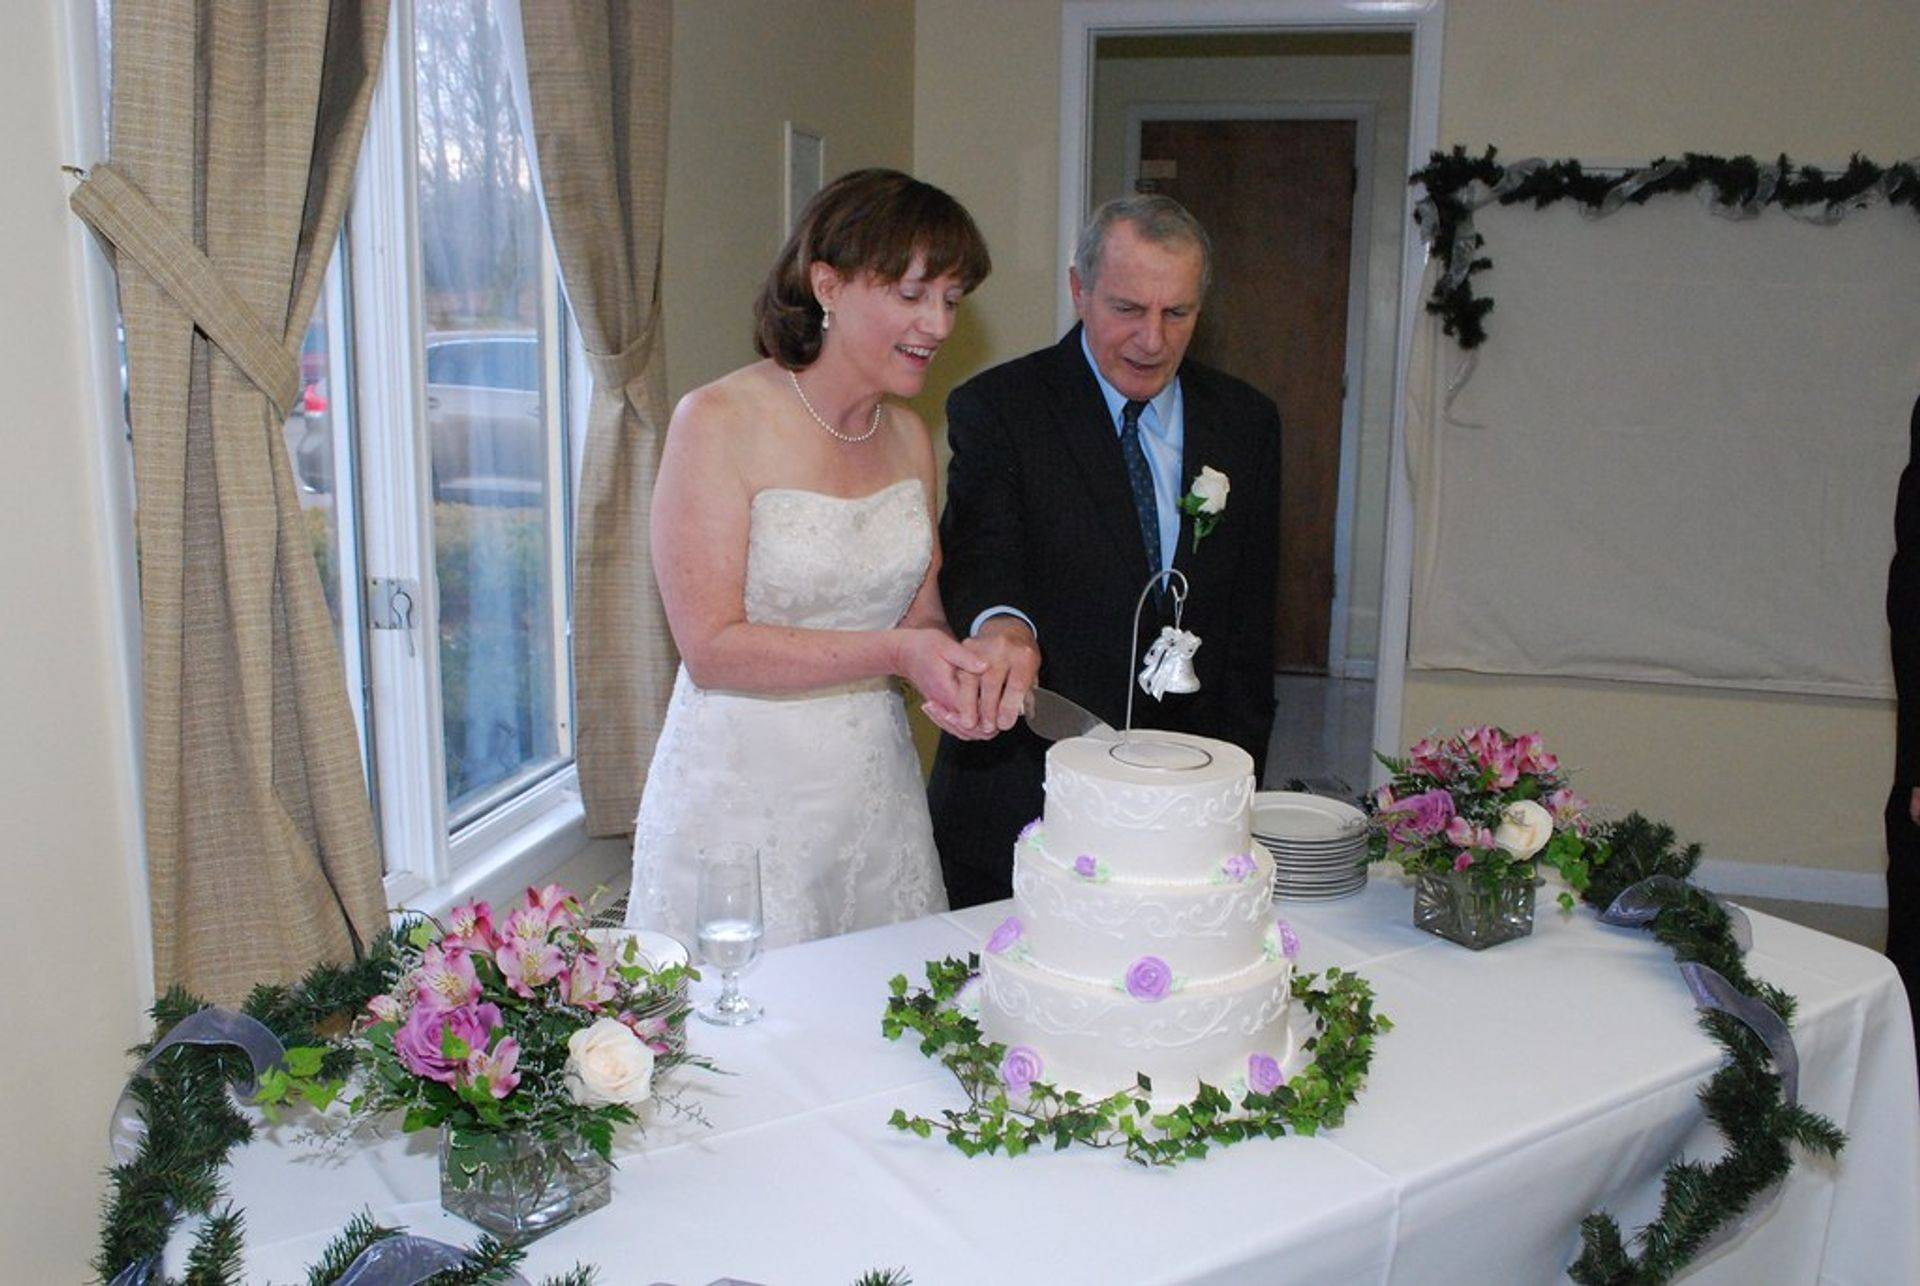 Wedding cakes and private wedding ceremonies